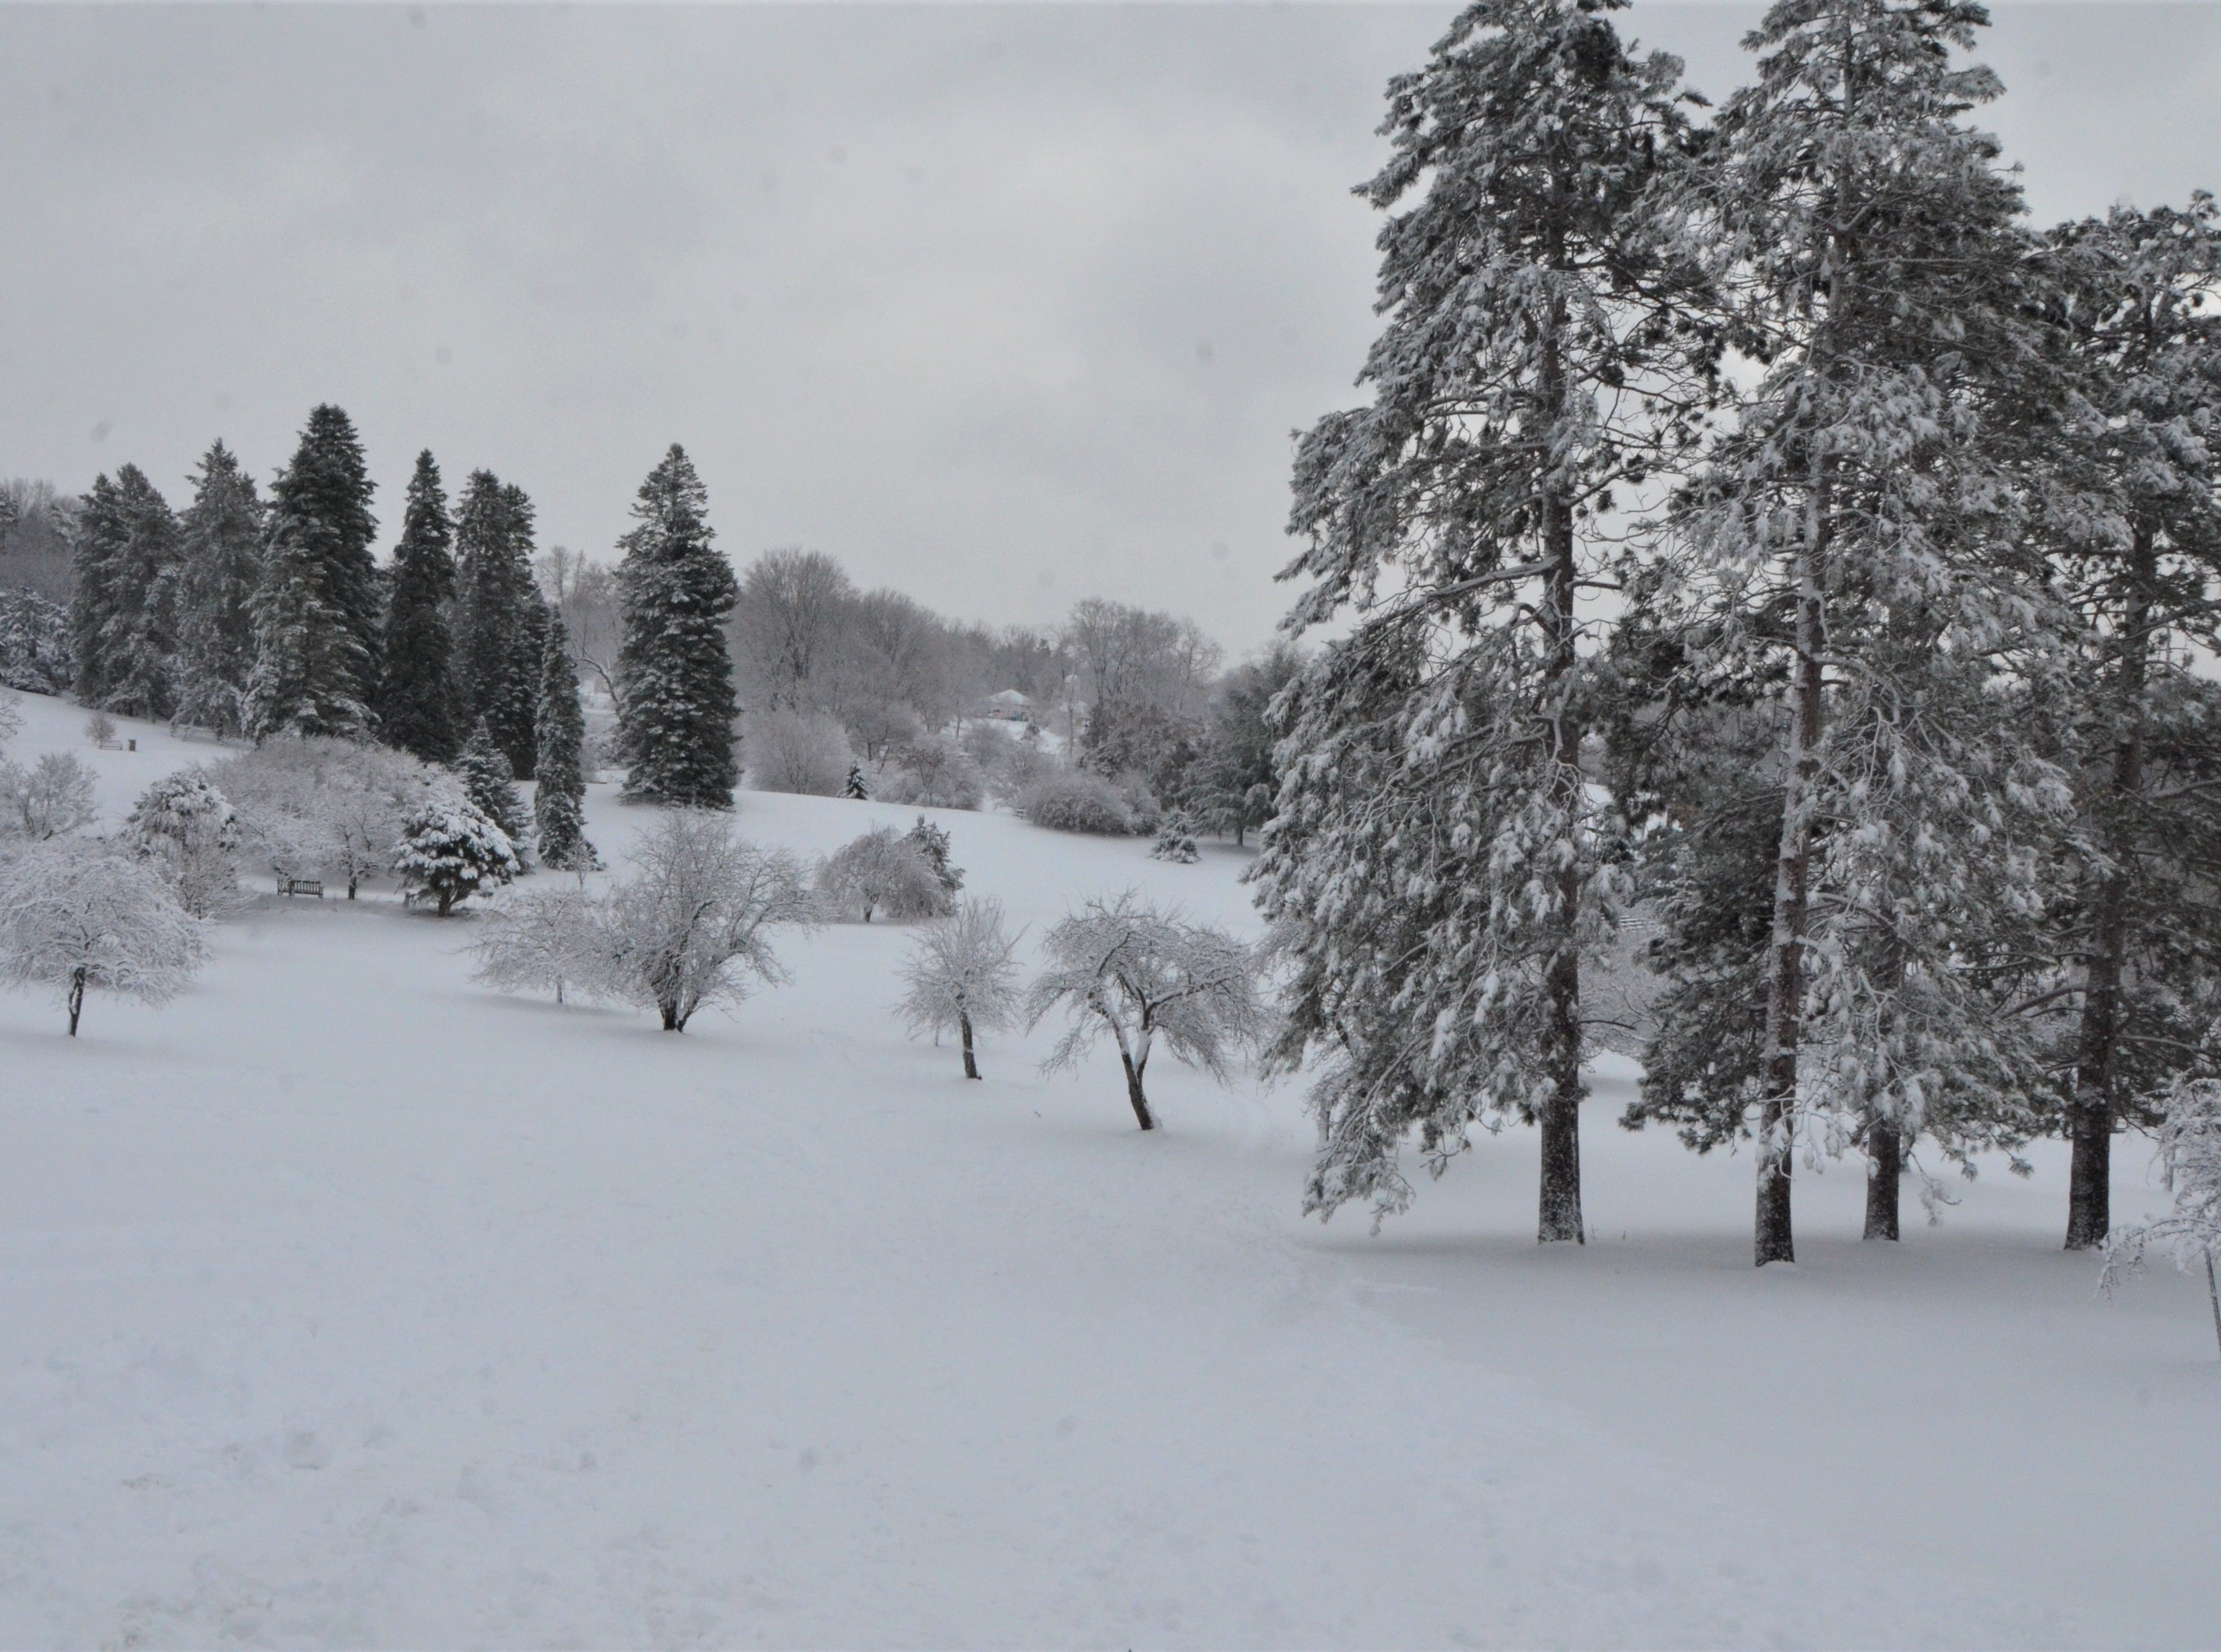 Leila Arboretum at 928 West Michigan Avenue in Battle Creek is a municipally-owned 72-acre property, with rolling hills that are ideal for sledding, snowshoeing or cross country skiing. It is open daily, from dawn until dusk.